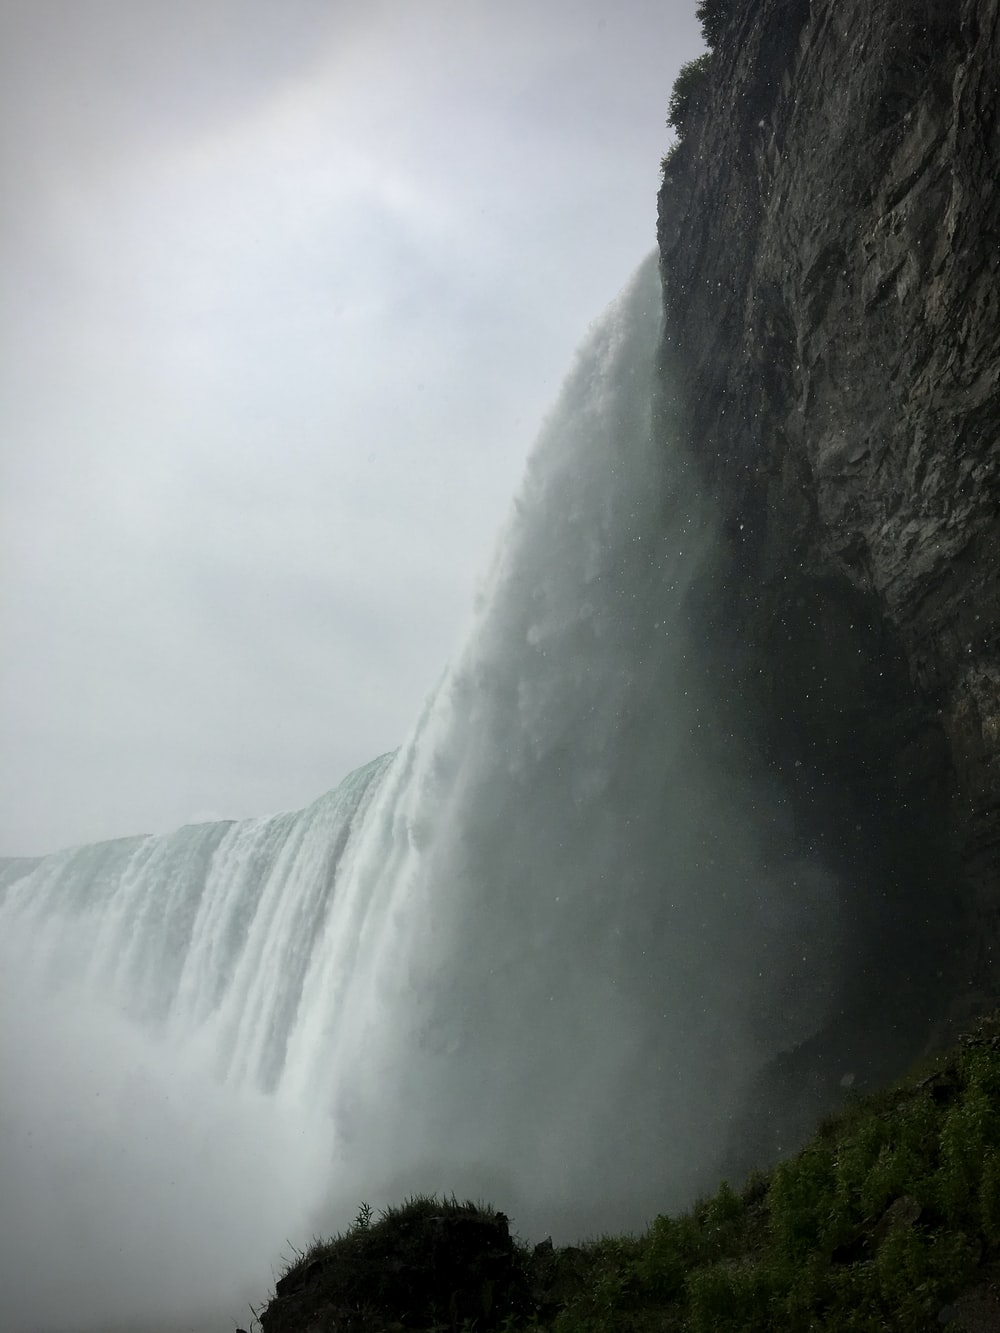 waterfalls under white cloudy sky during daytime